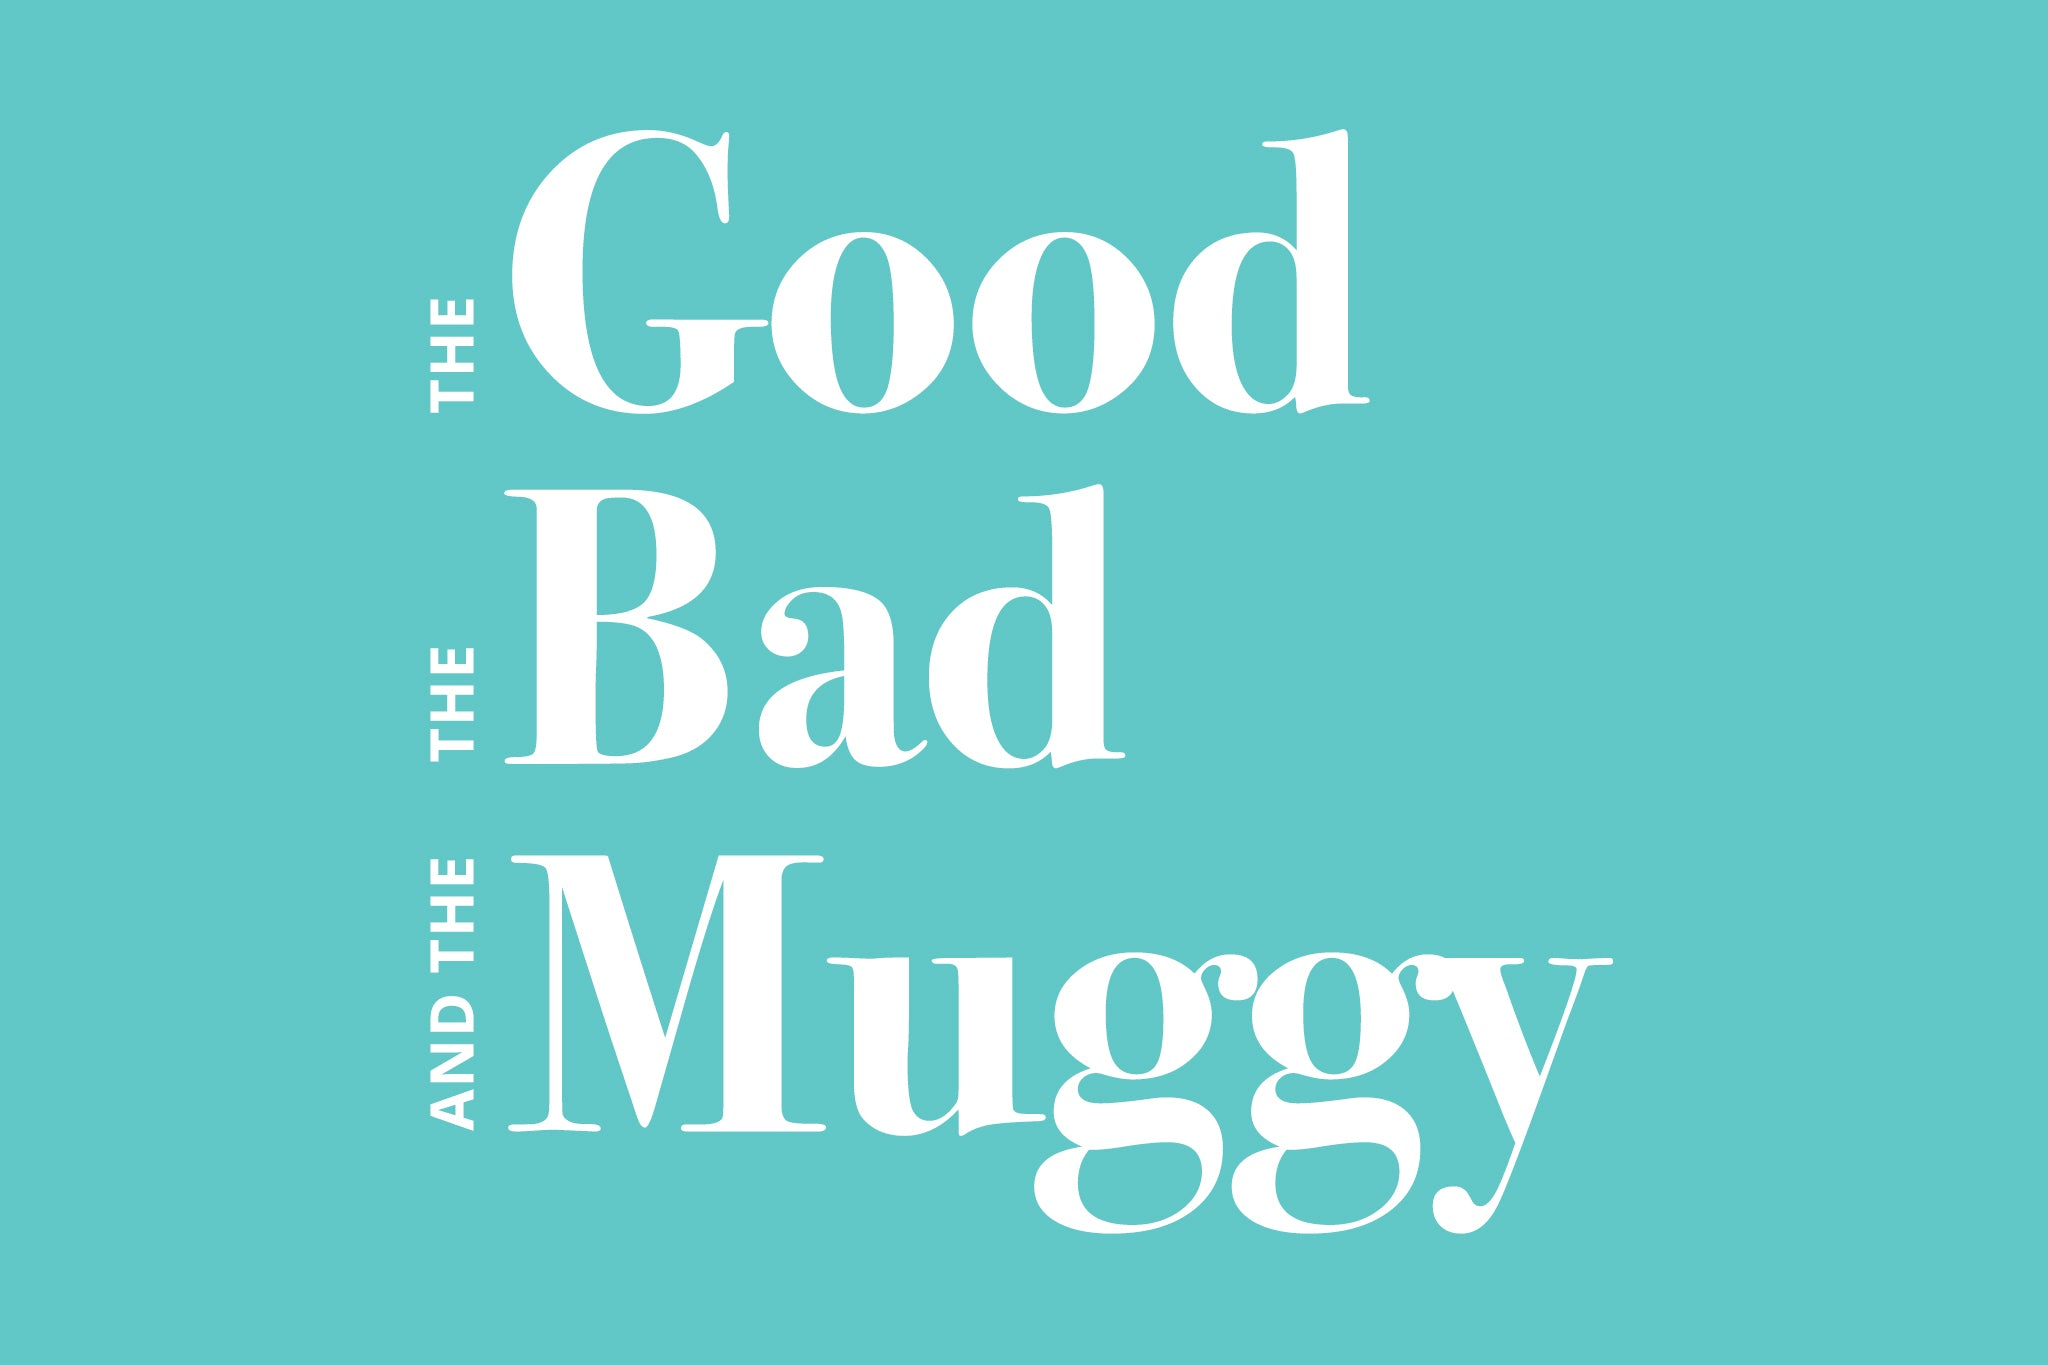 Memory Foam: The Good, the Bad, and the Muggy